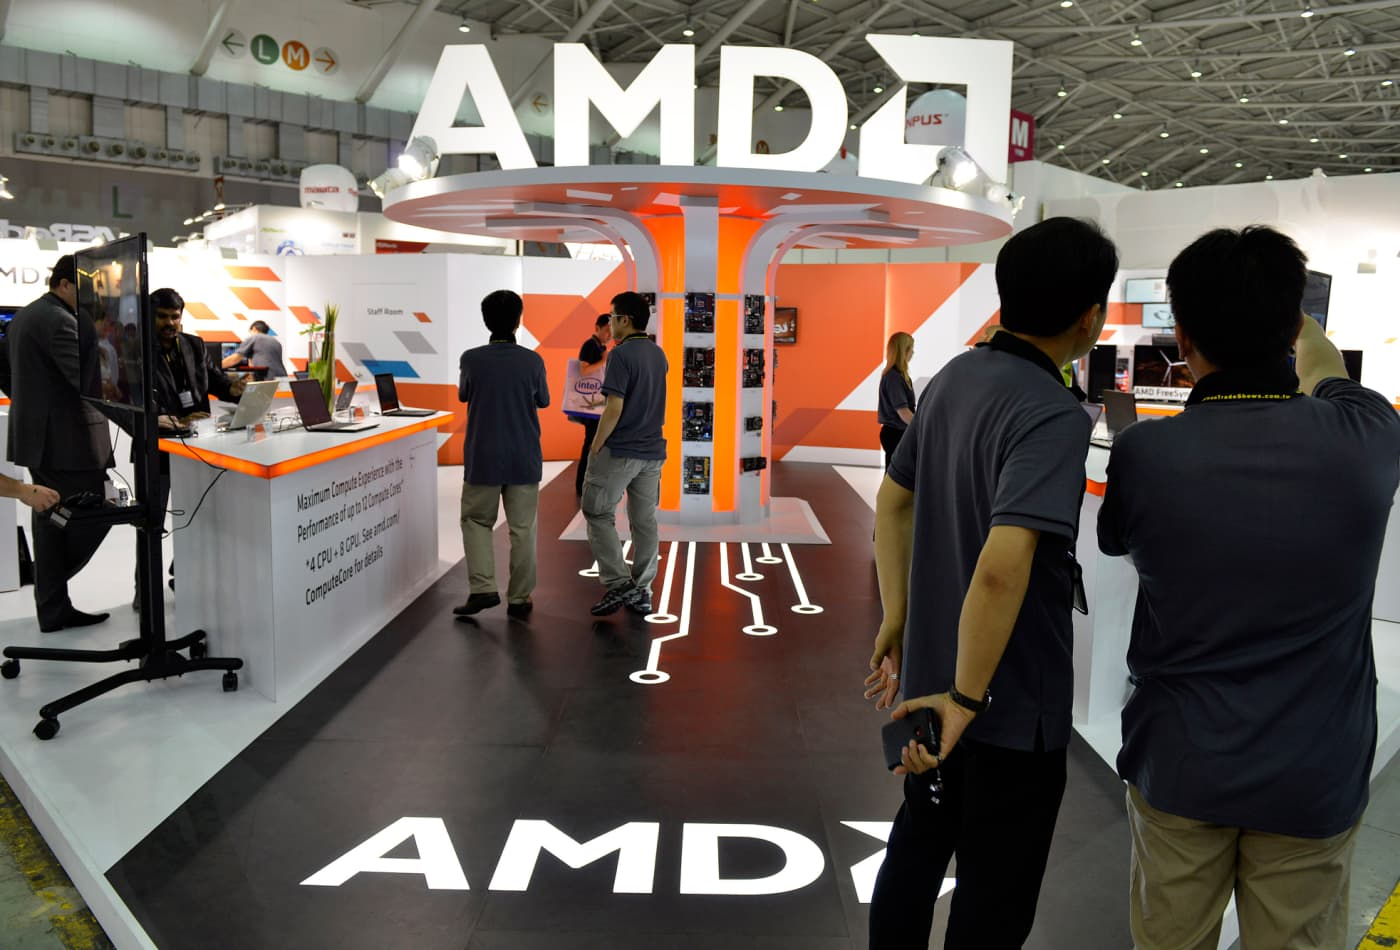 AMD could see a 35% decline after massive run, trader warns